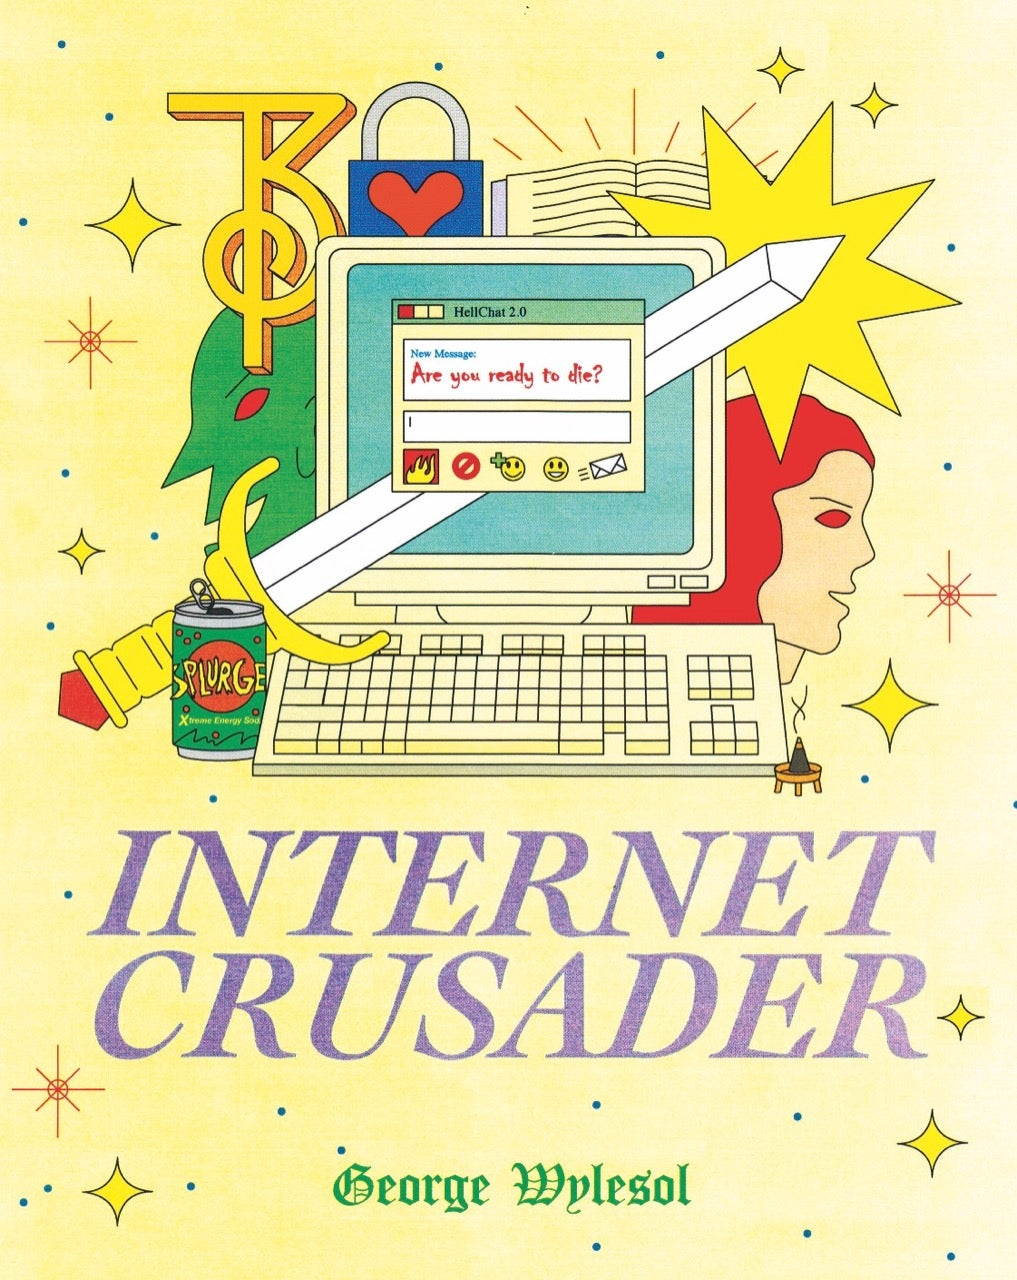 Internet Crusader by George Wylesol